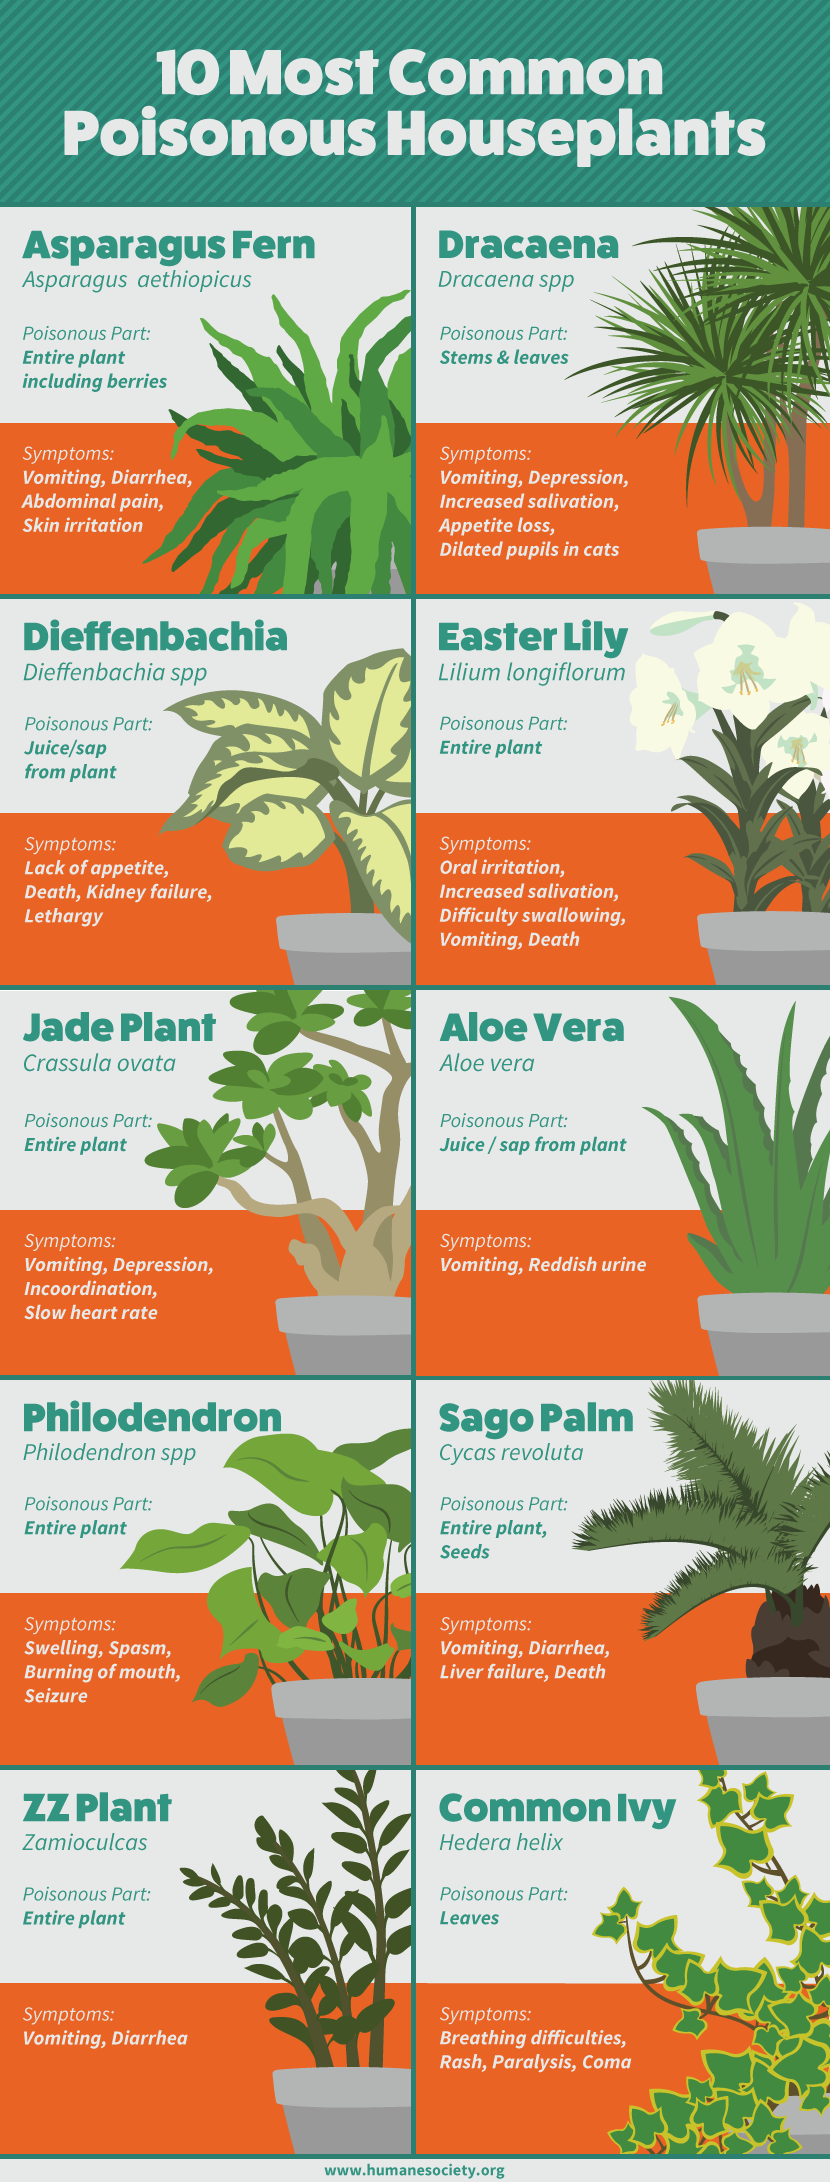 A Guide To Dangerous Houseplants For Pets Keep Your Dogs And Cats Safe By Avoiding Contact With These Popular D Plants Poisonous House Plants Poisonous Plants